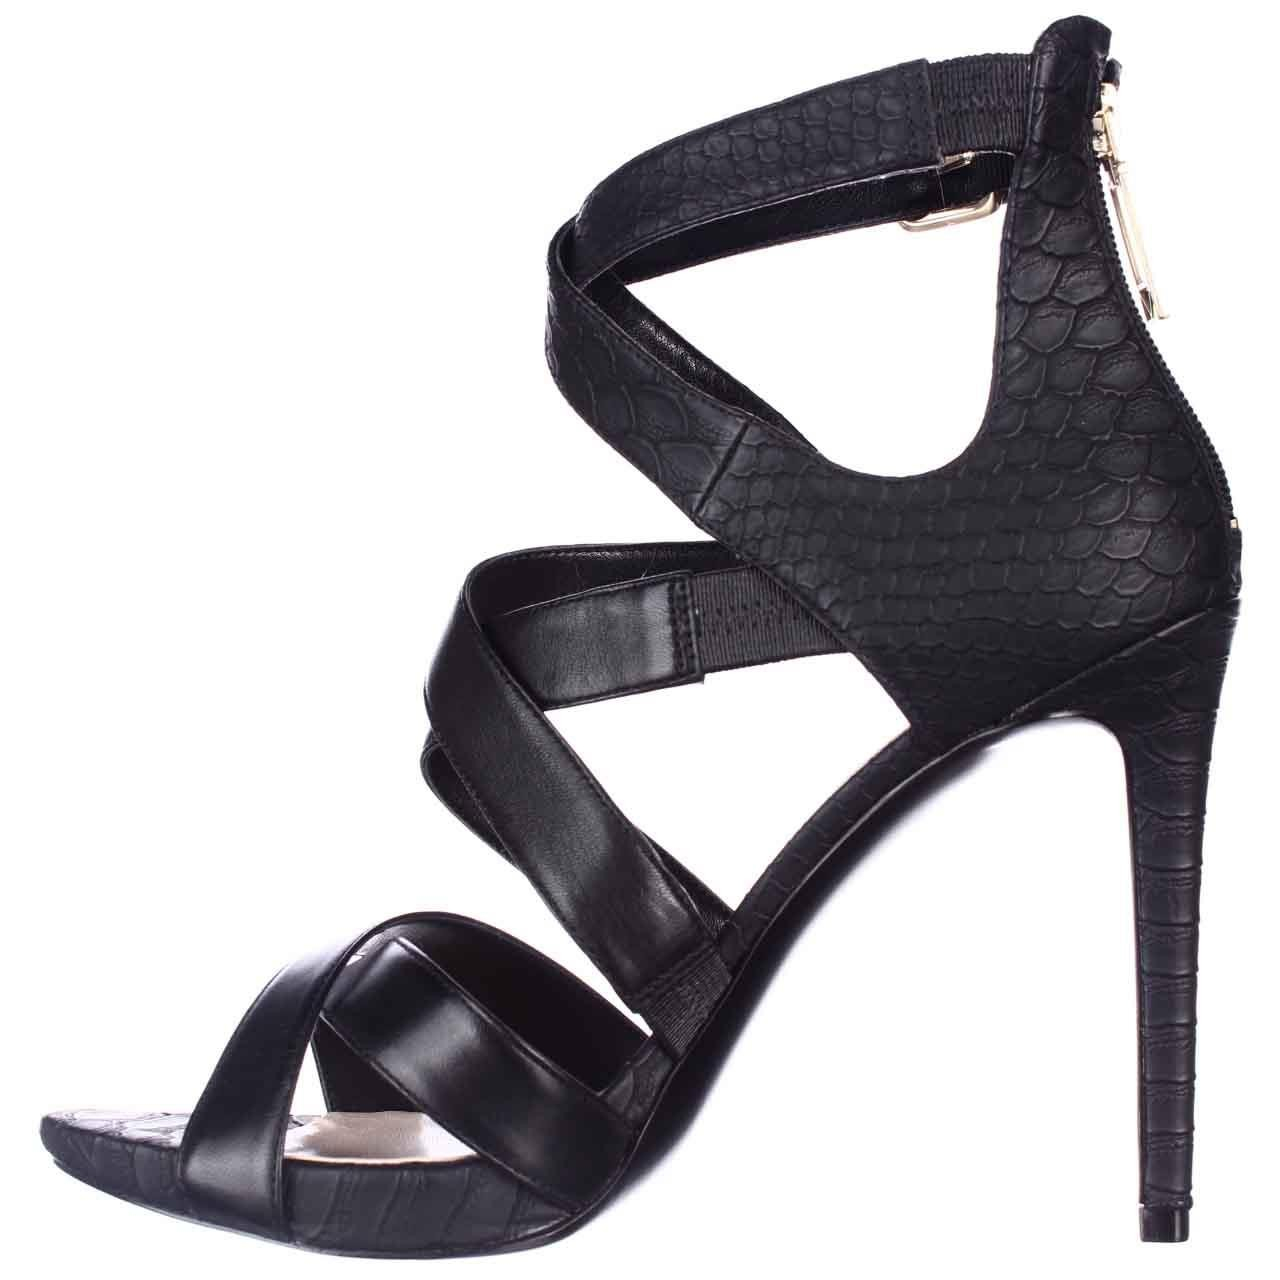 Abby Strappy Heels Dress Sandals Guess Sandals Heels Shoes